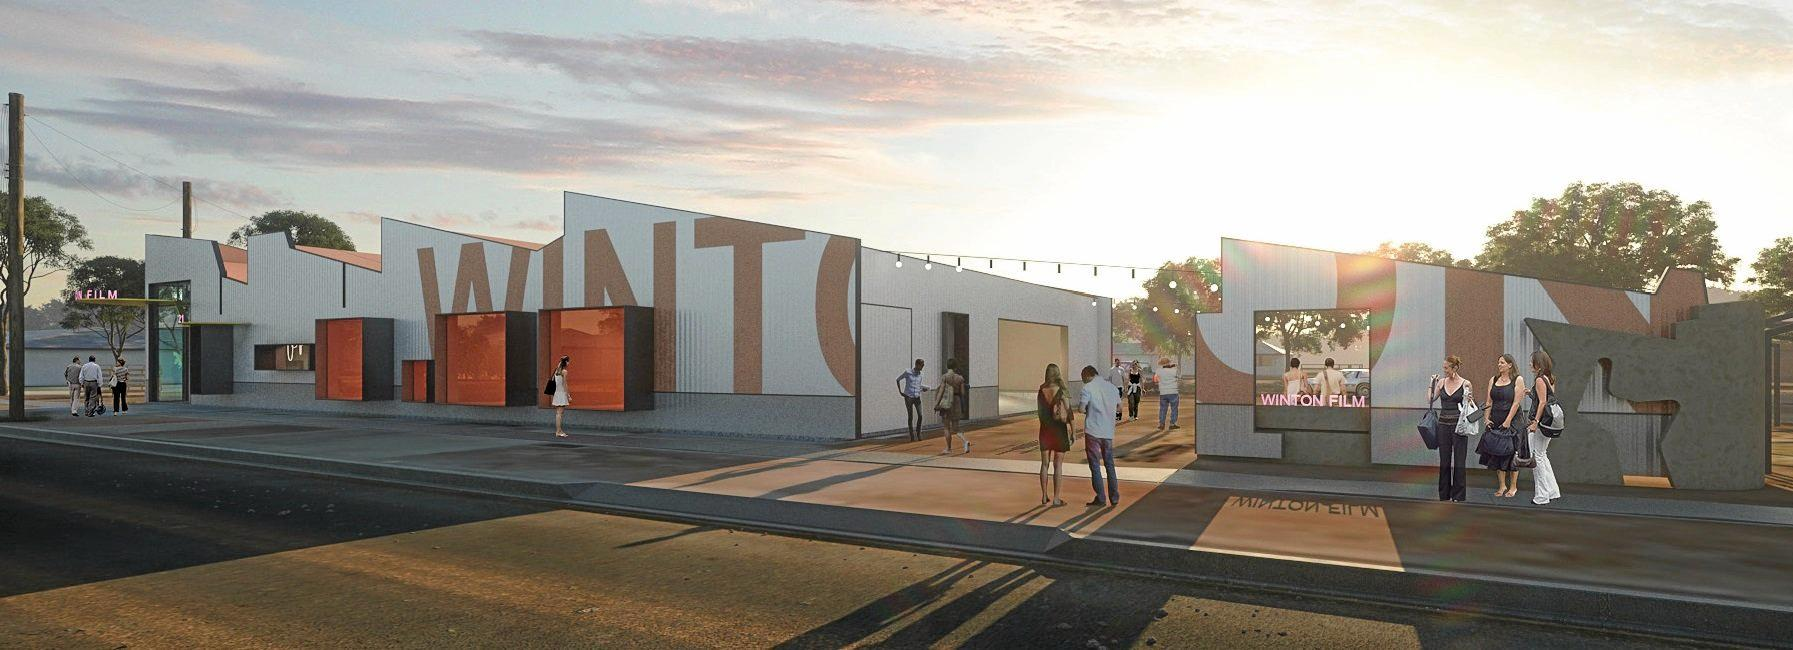 Artist's impression of the Winton Film Studios.